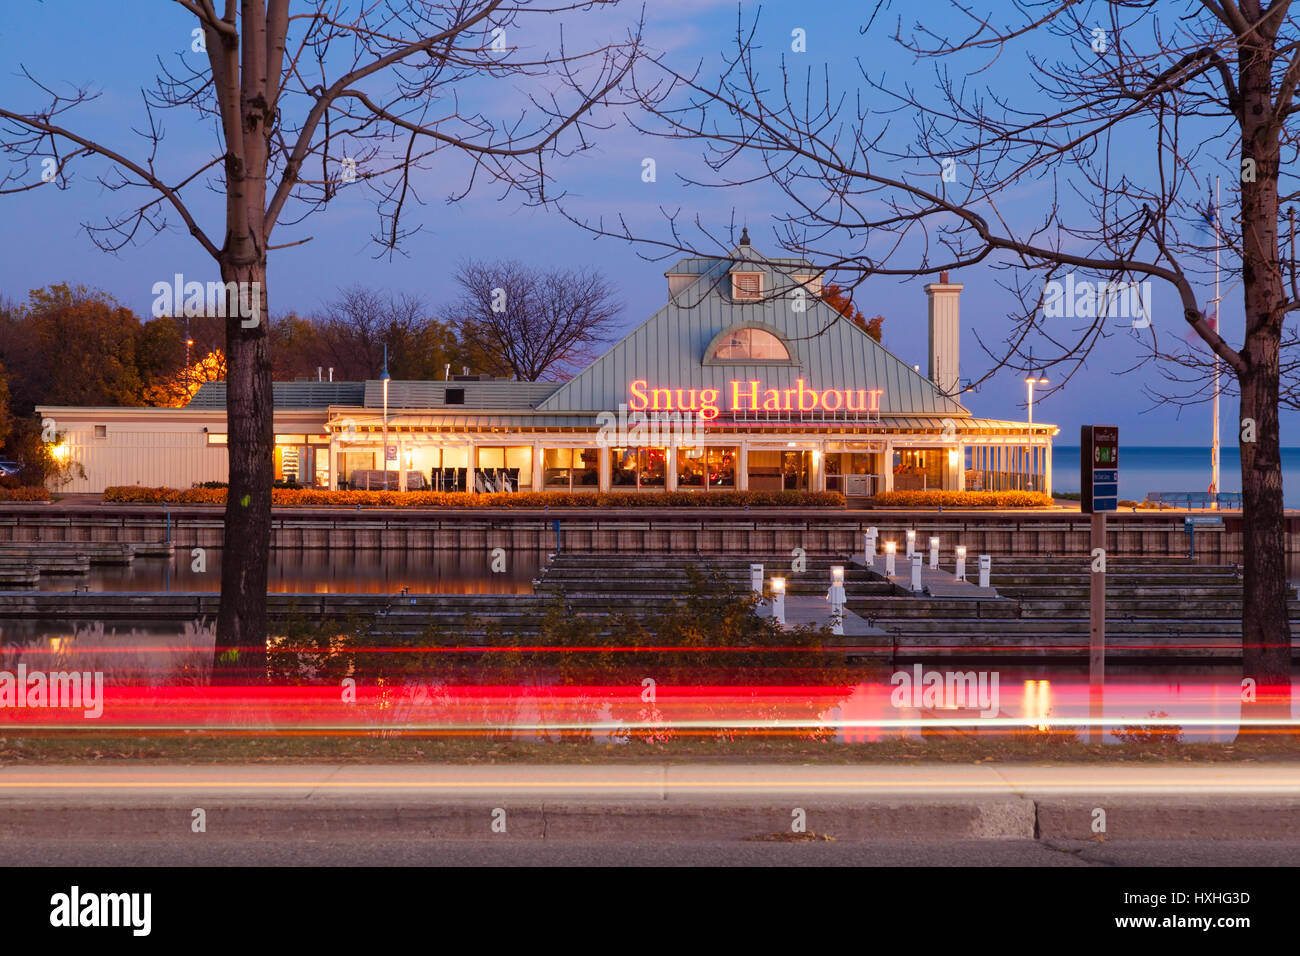 The Snug Harbour Seafood Restaurant on Lake Ontario at dusk Port Credit, Mississauga, Ontario, Canada. - Stock Image